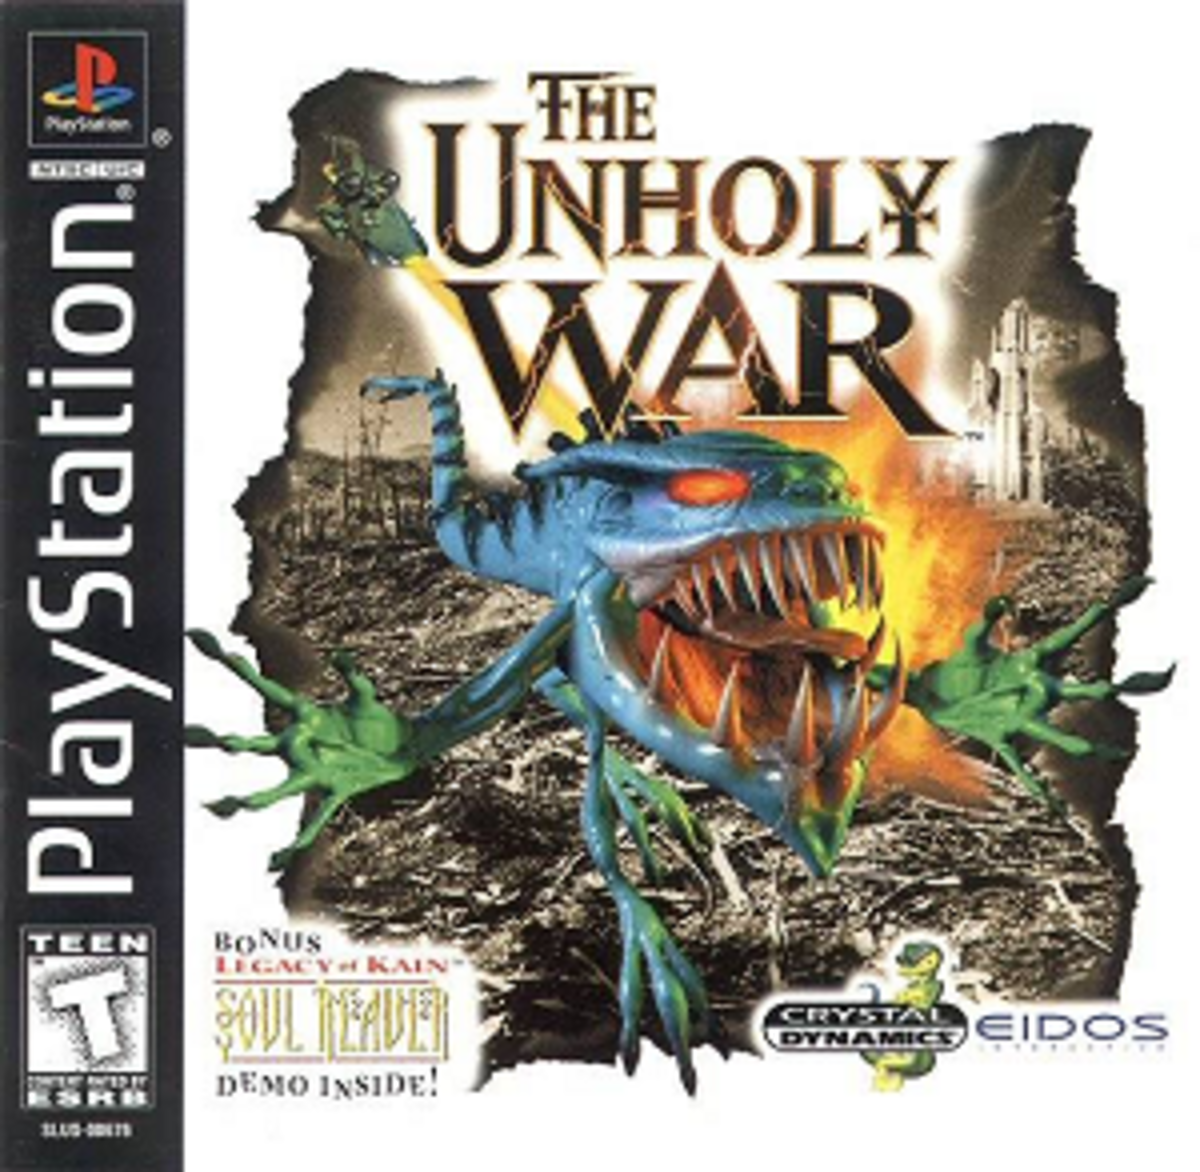 The Unholy War - A Retrospective Review